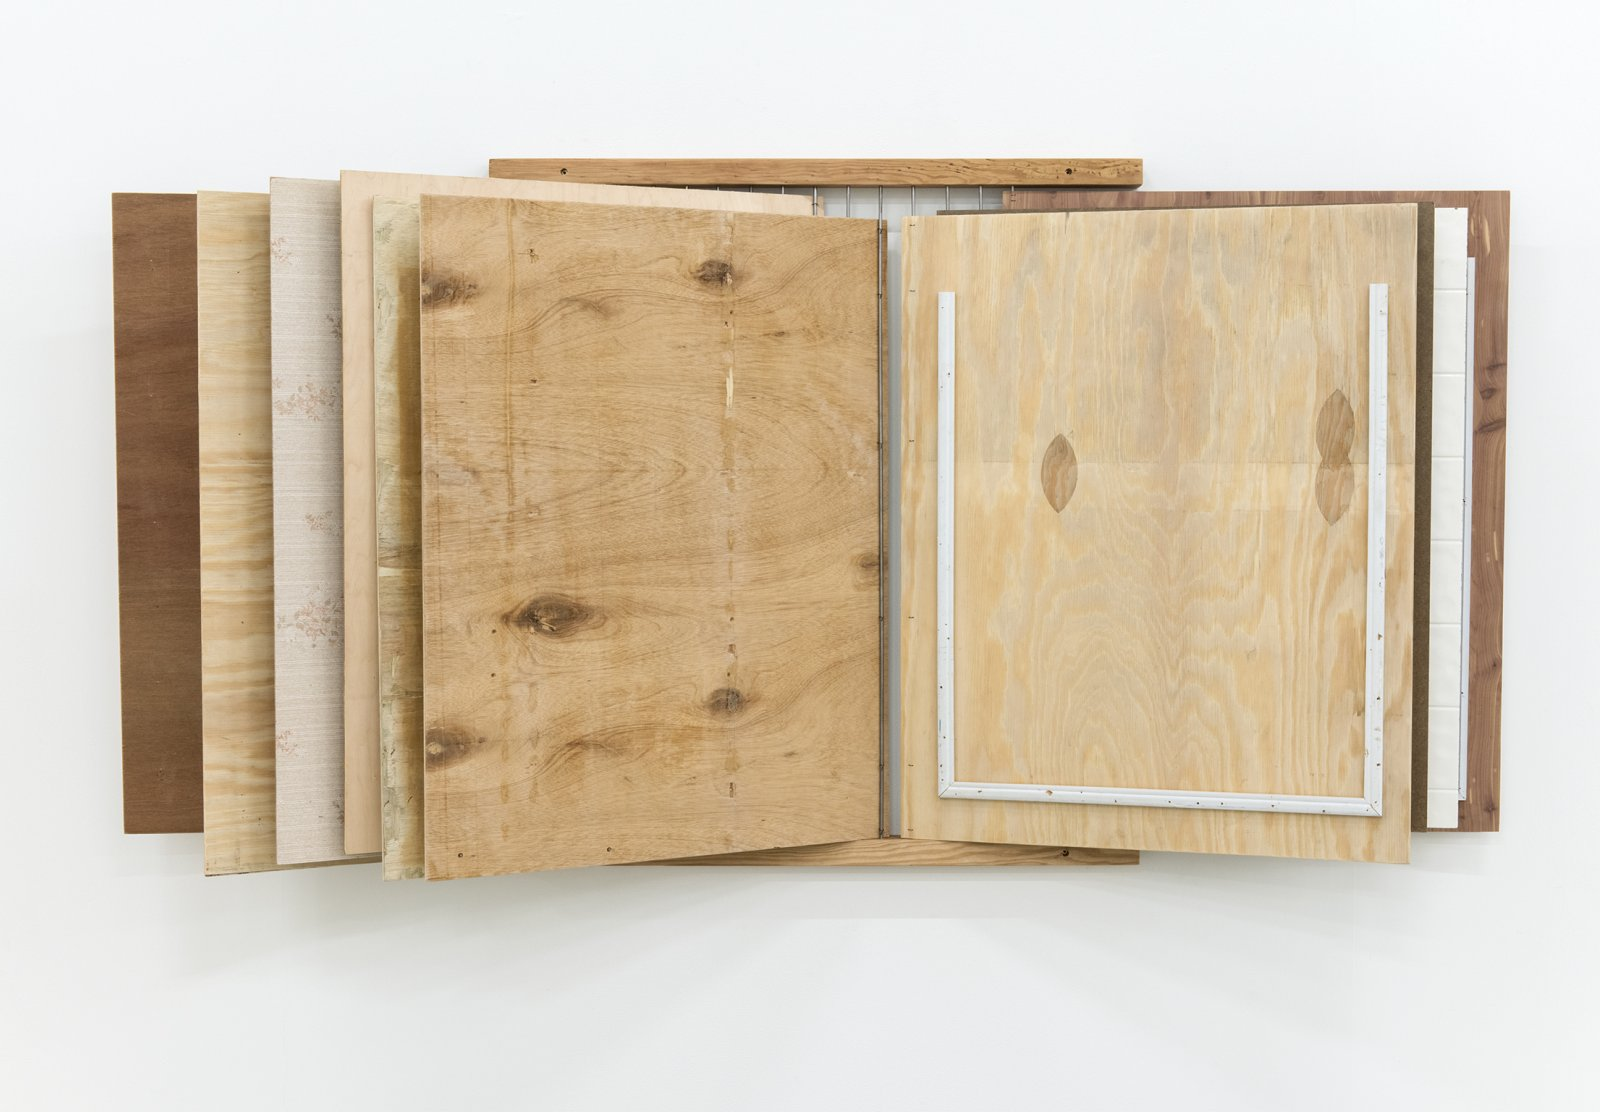 ​Gareth Moore, PH 1, They did not live there..., 2013, wood, 34 x 27 in. (85 x 69 cm) by Ashes Withyman